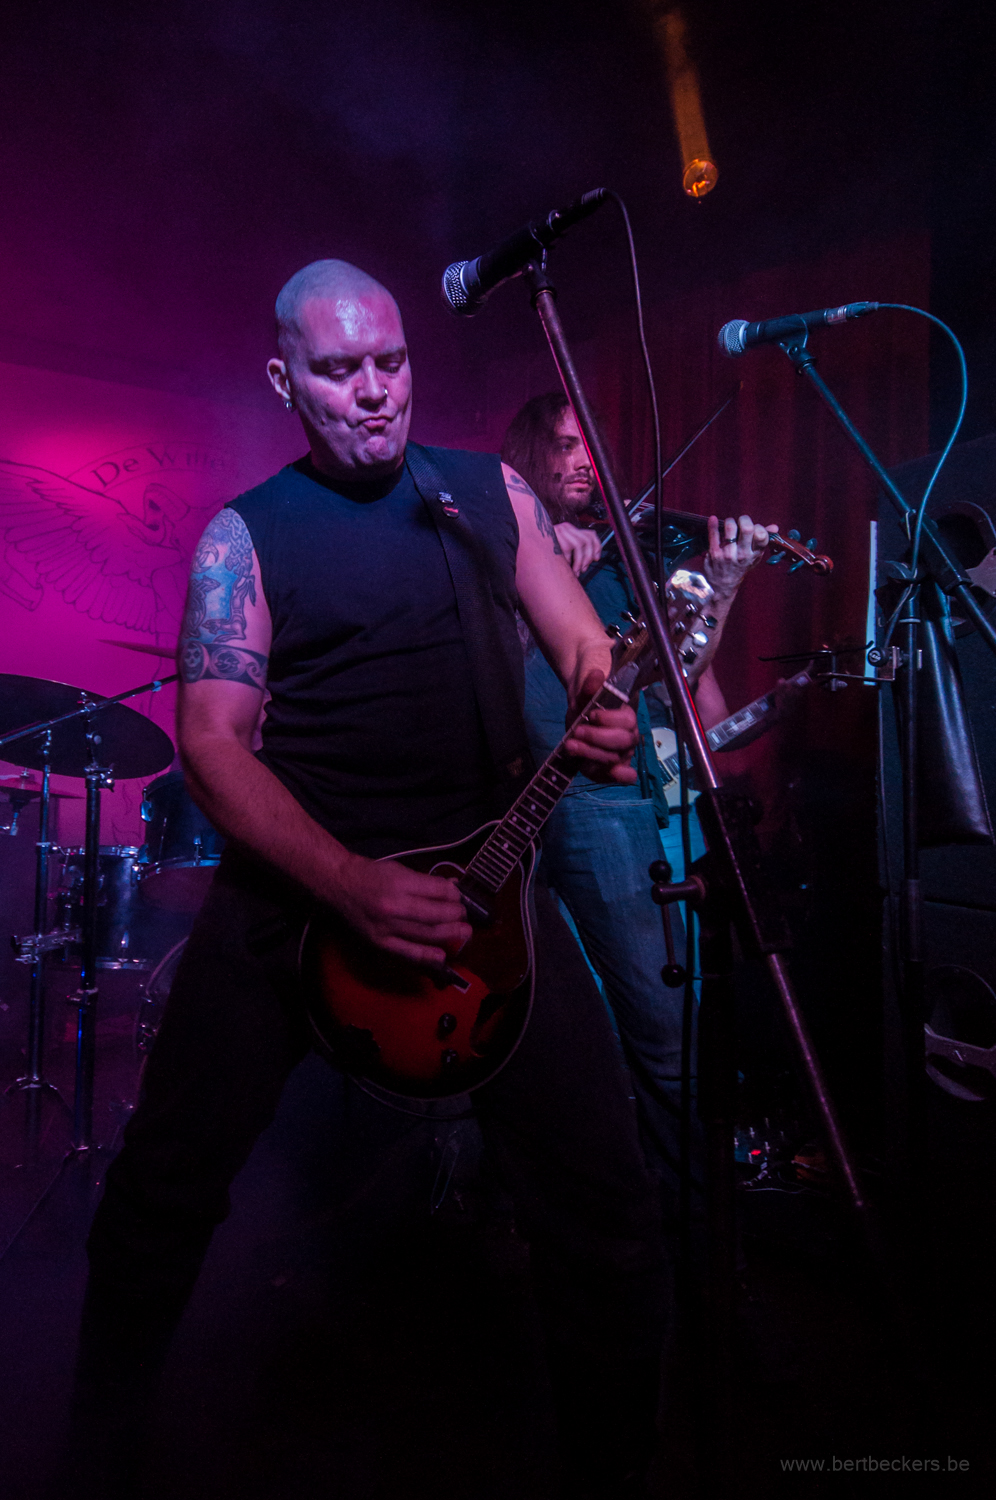 Chain of Dogs live in de Witte Non in Hasselt